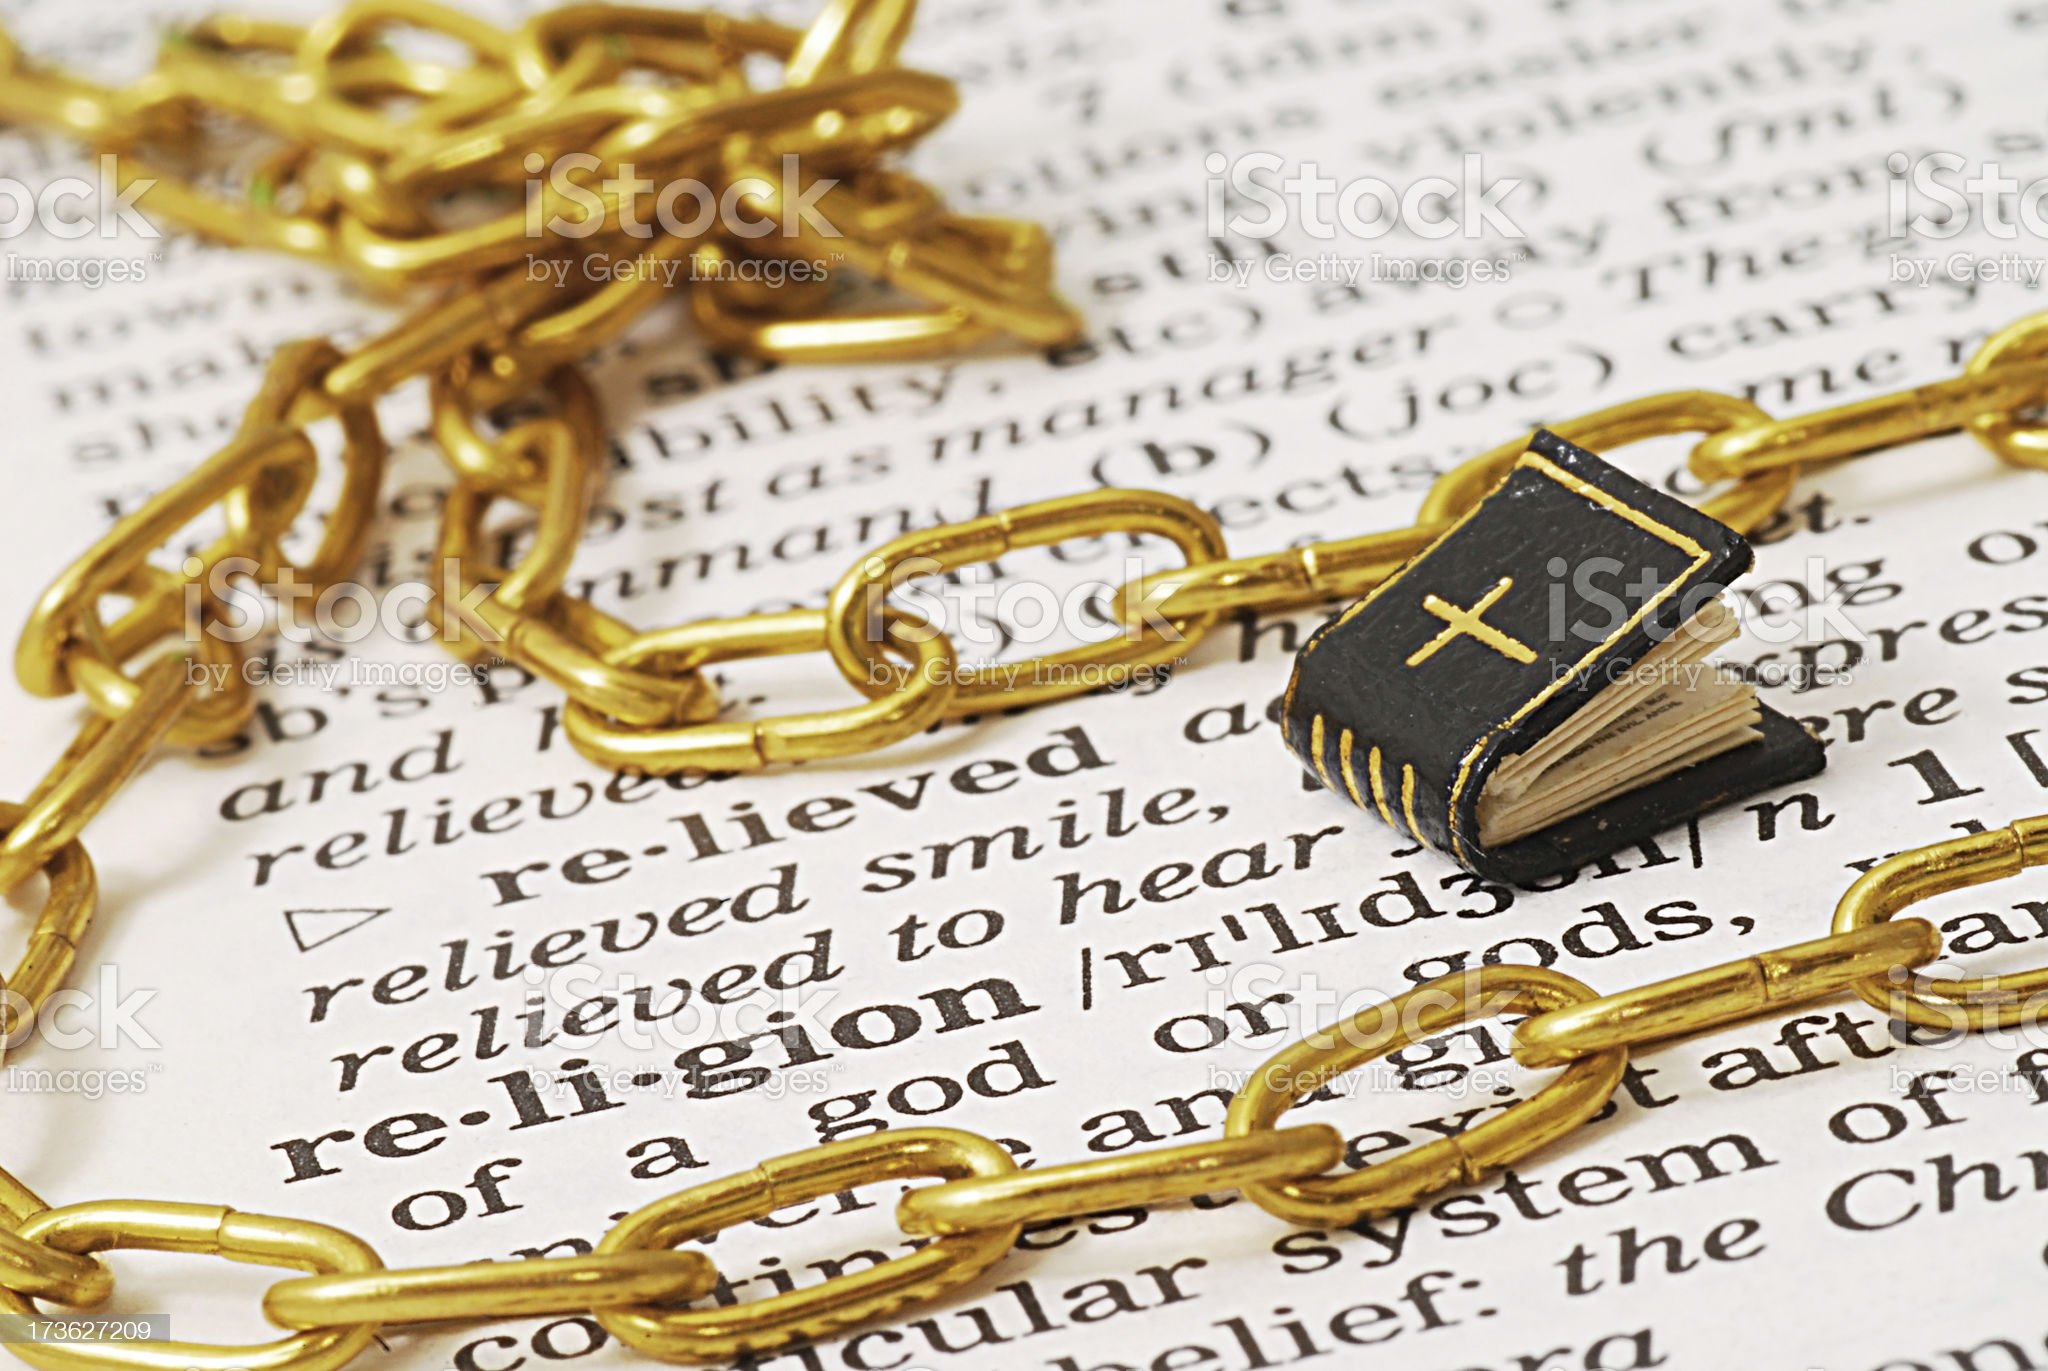 religion definition chains in dictionary royalty-free stock photo